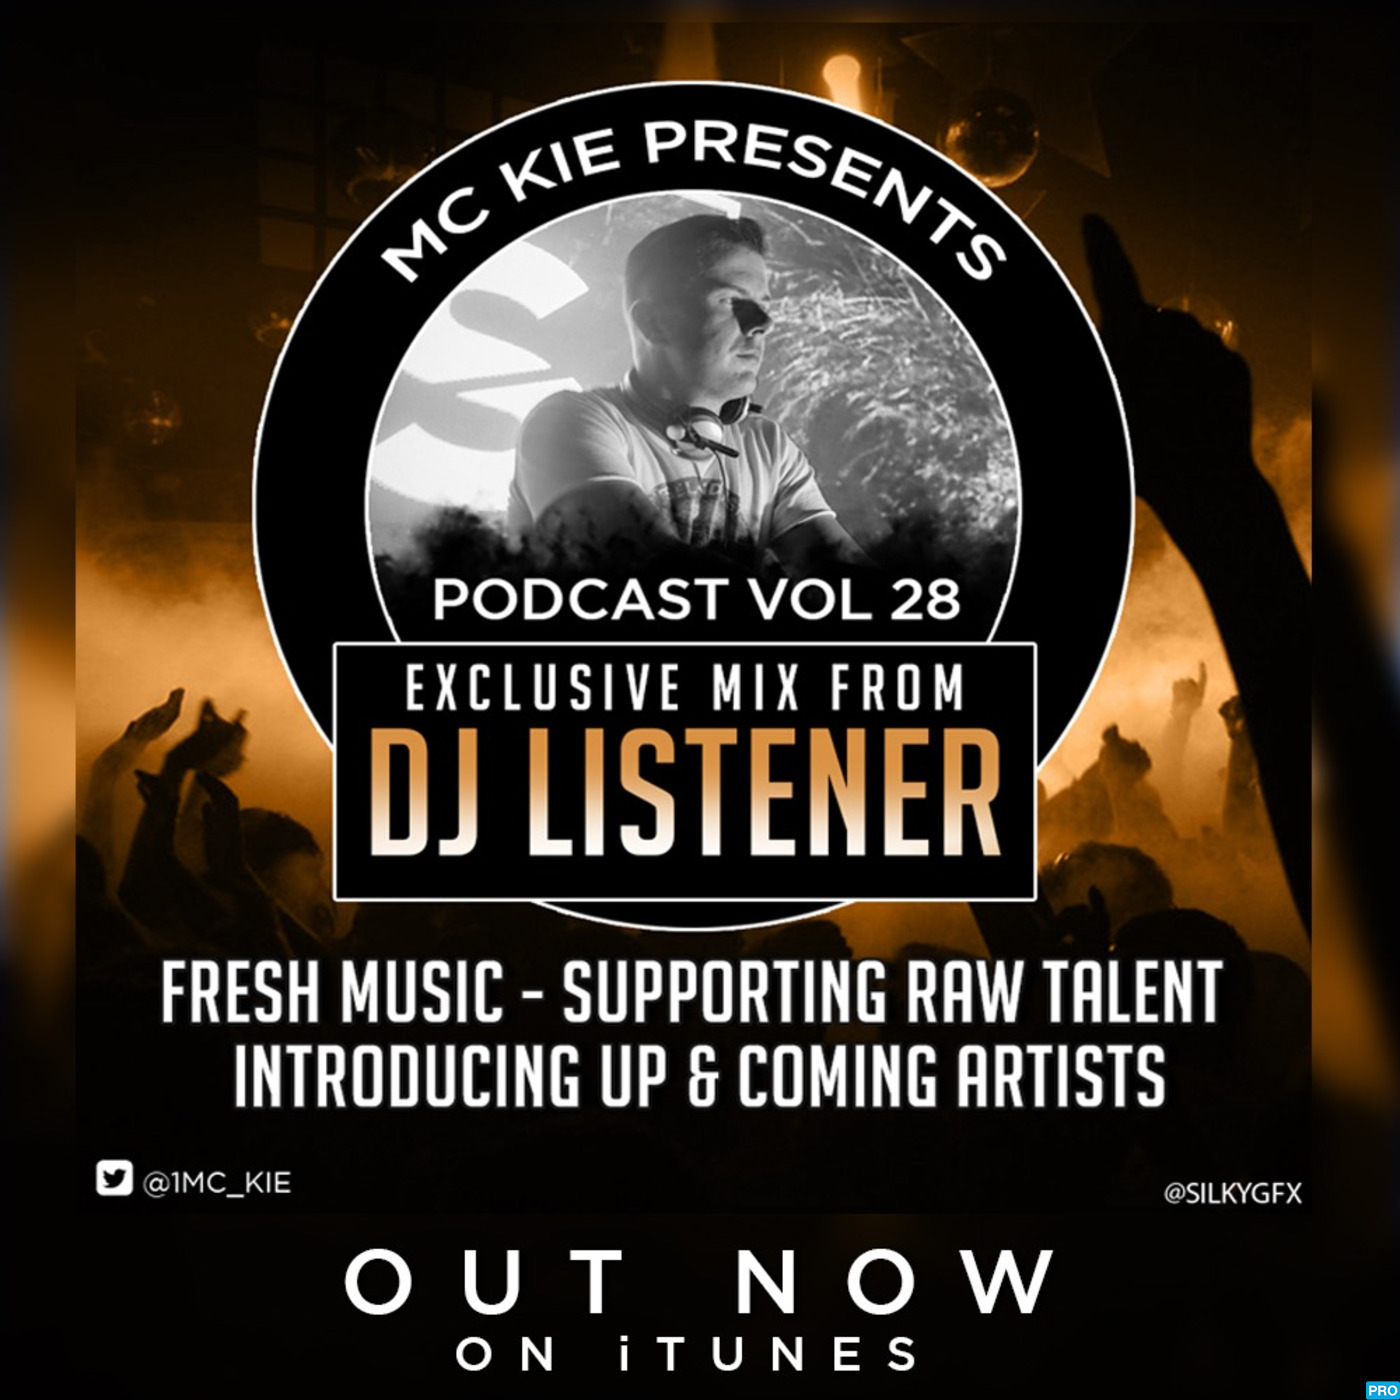 MC KIE PRESENTS' Podcast